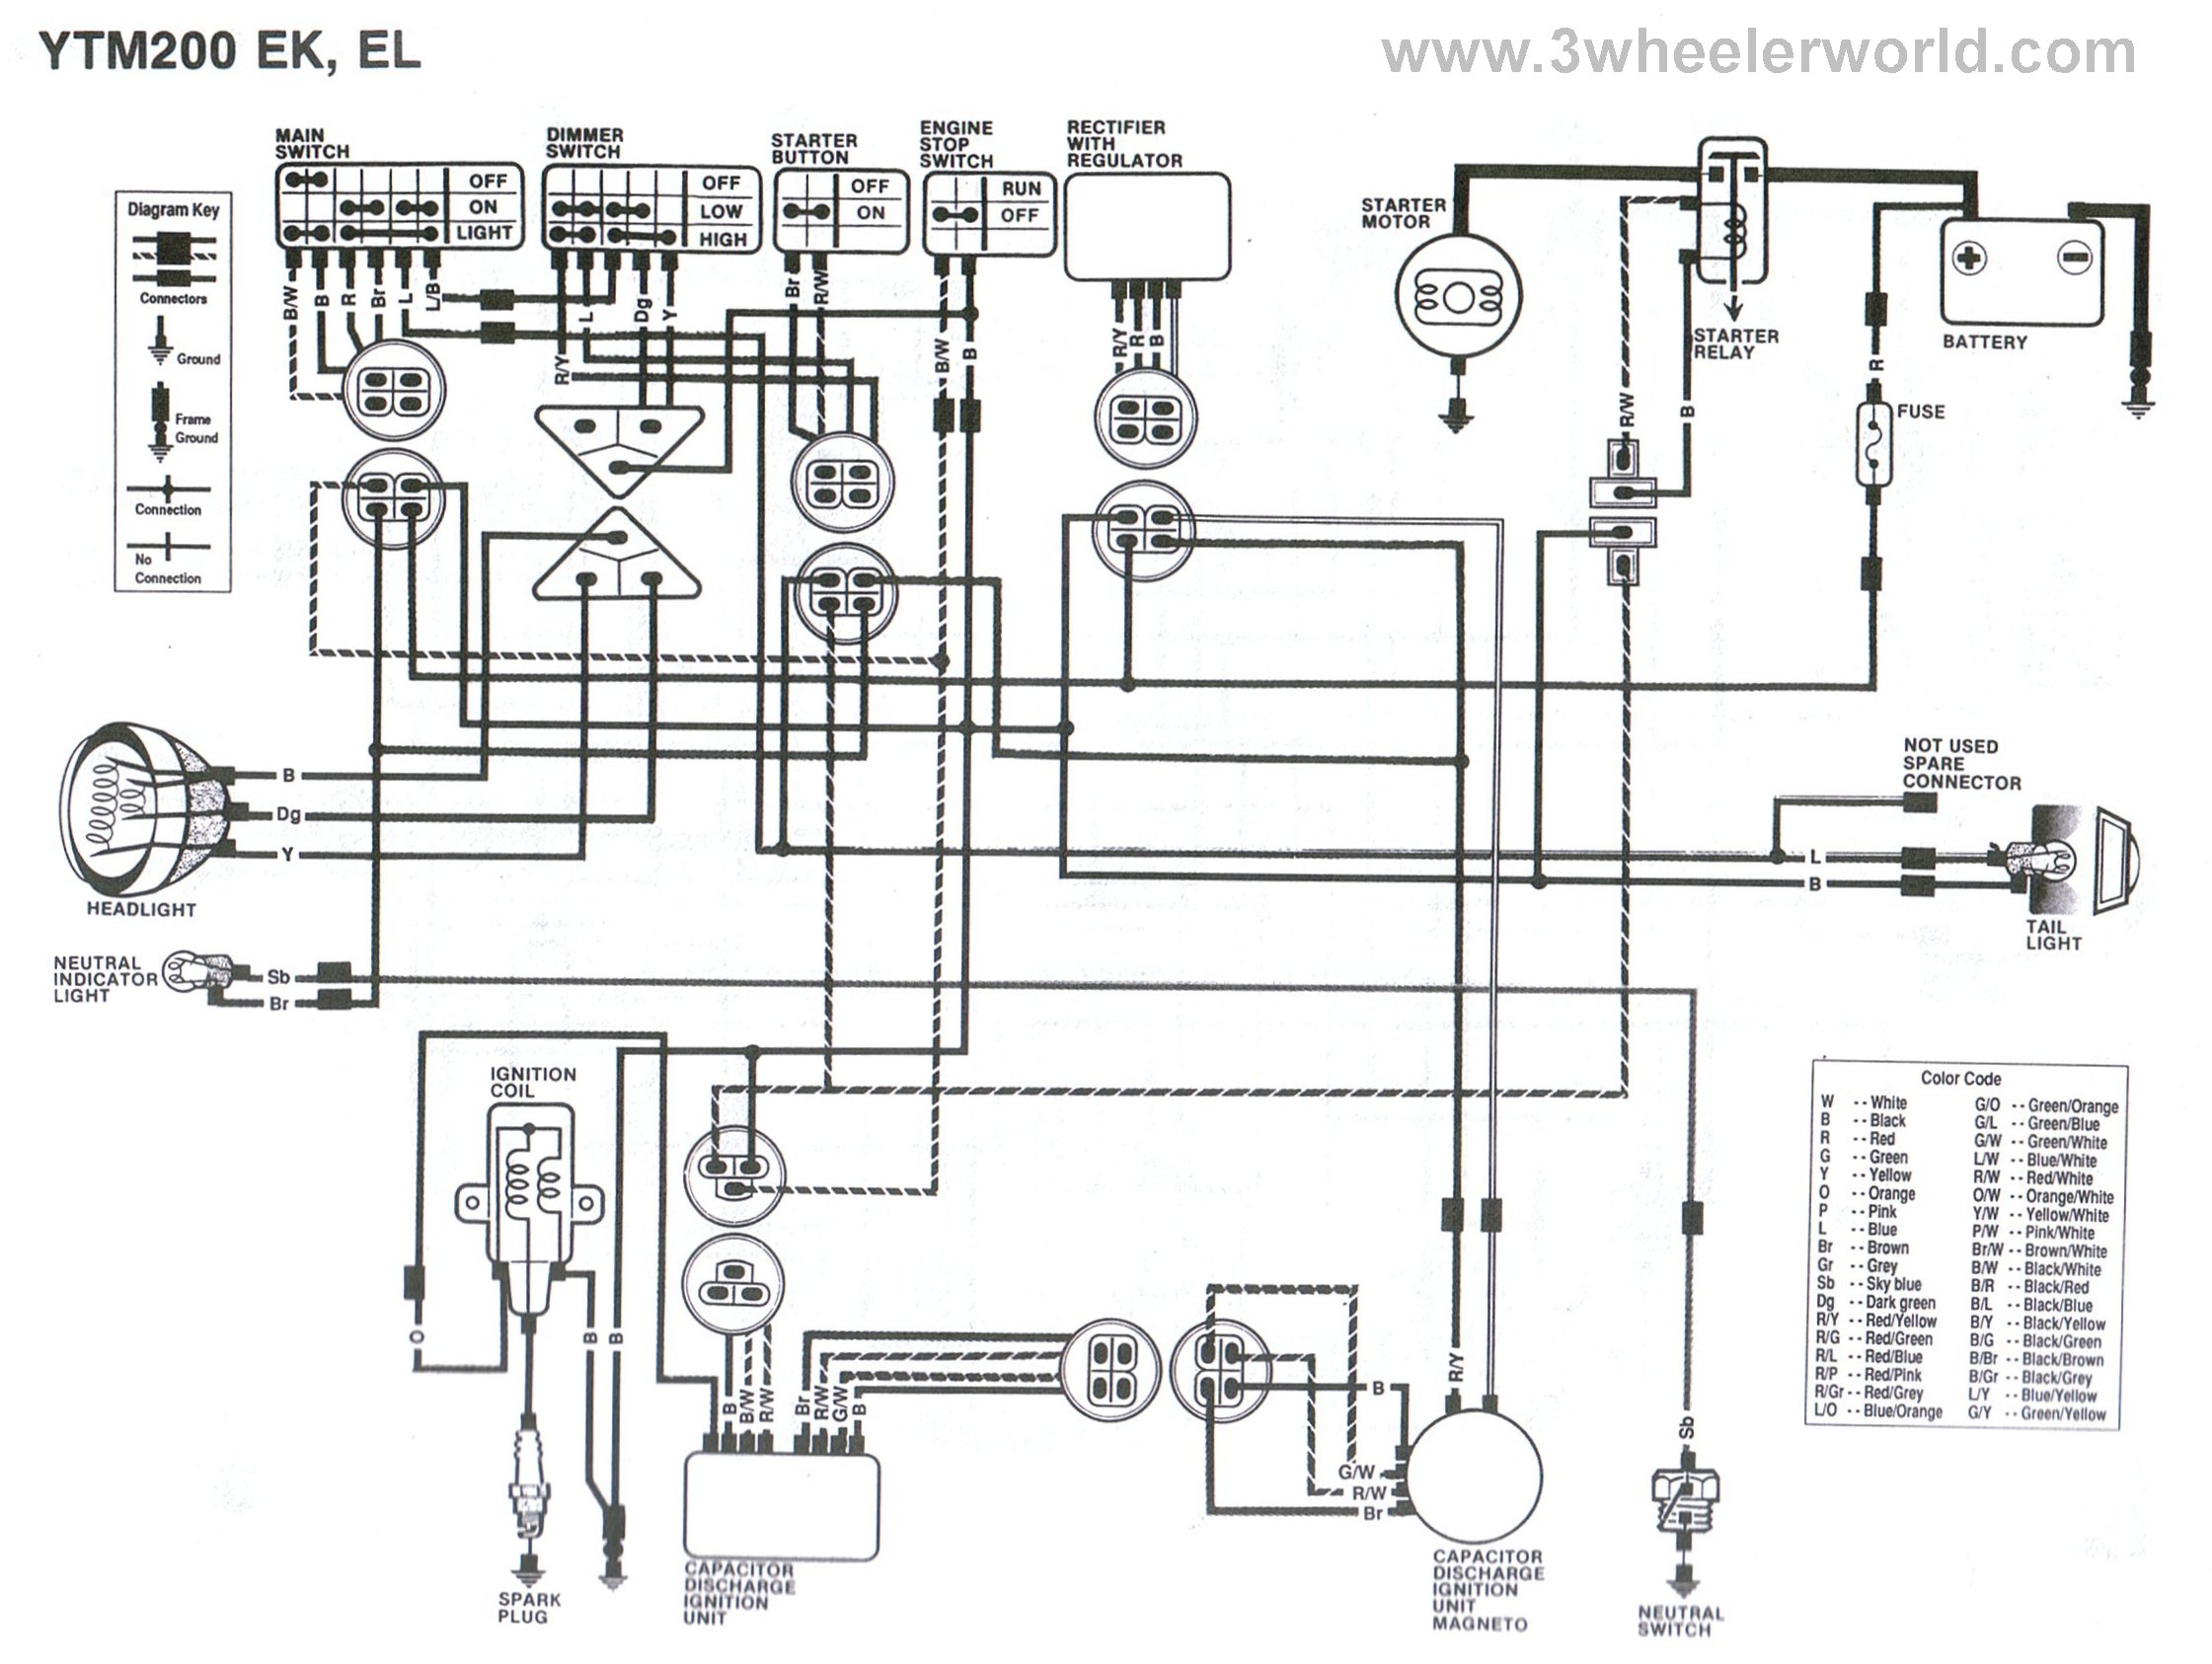 YTM200EKEL 3 wheeler world tech help yamaha wiring diagrams yamaha banshee wiring diagram at readyjetset.co